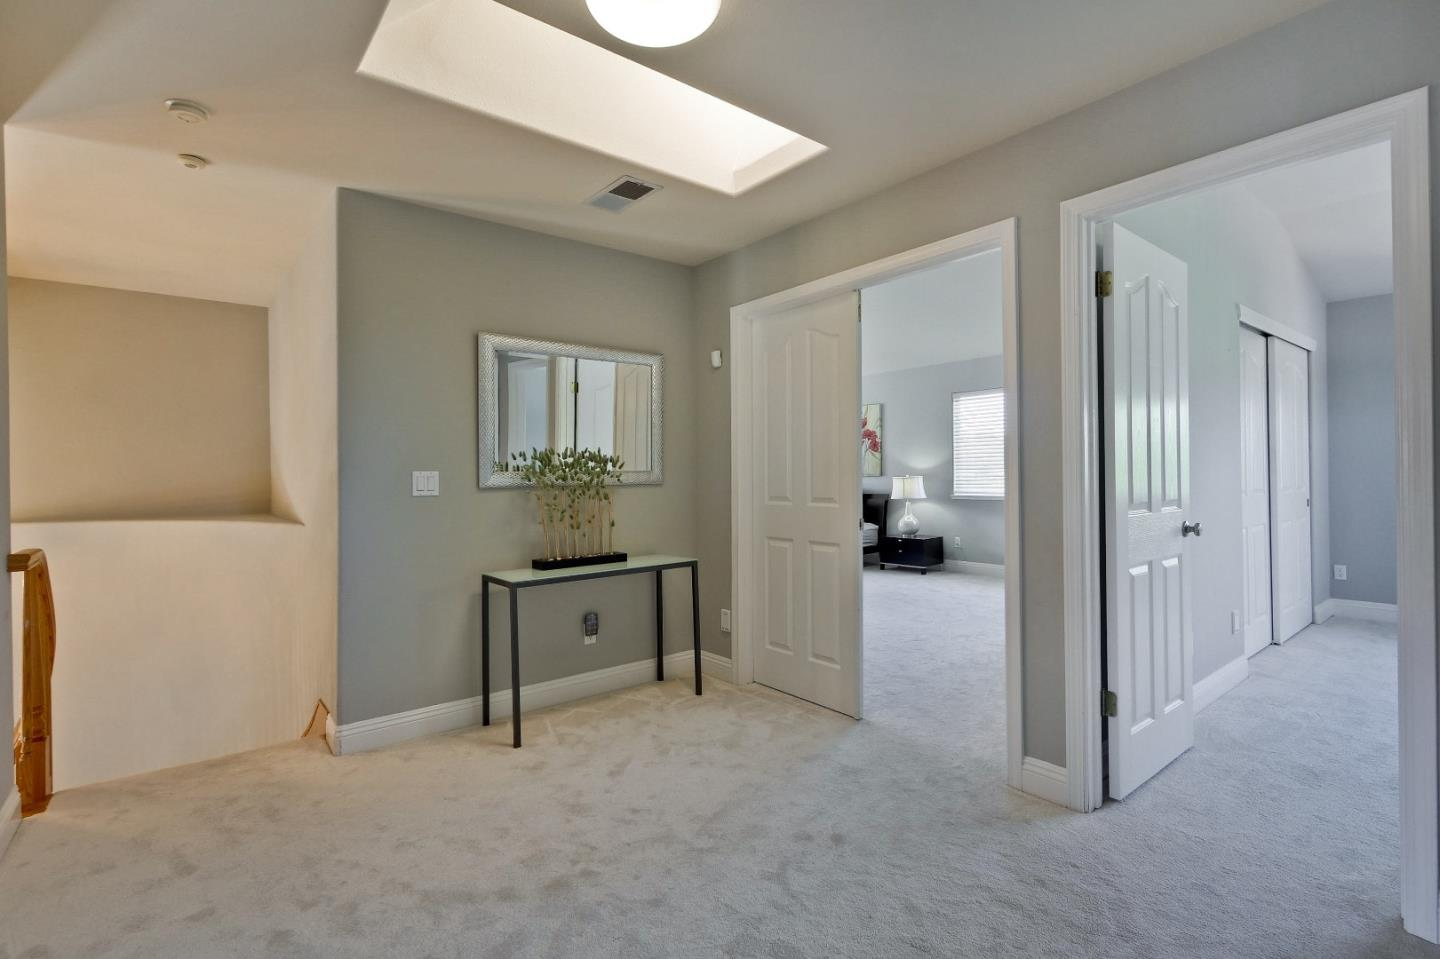 Additional photo for property listing at 10337 Tula Ln  CUPERTINO, CALIFORNIA 95014